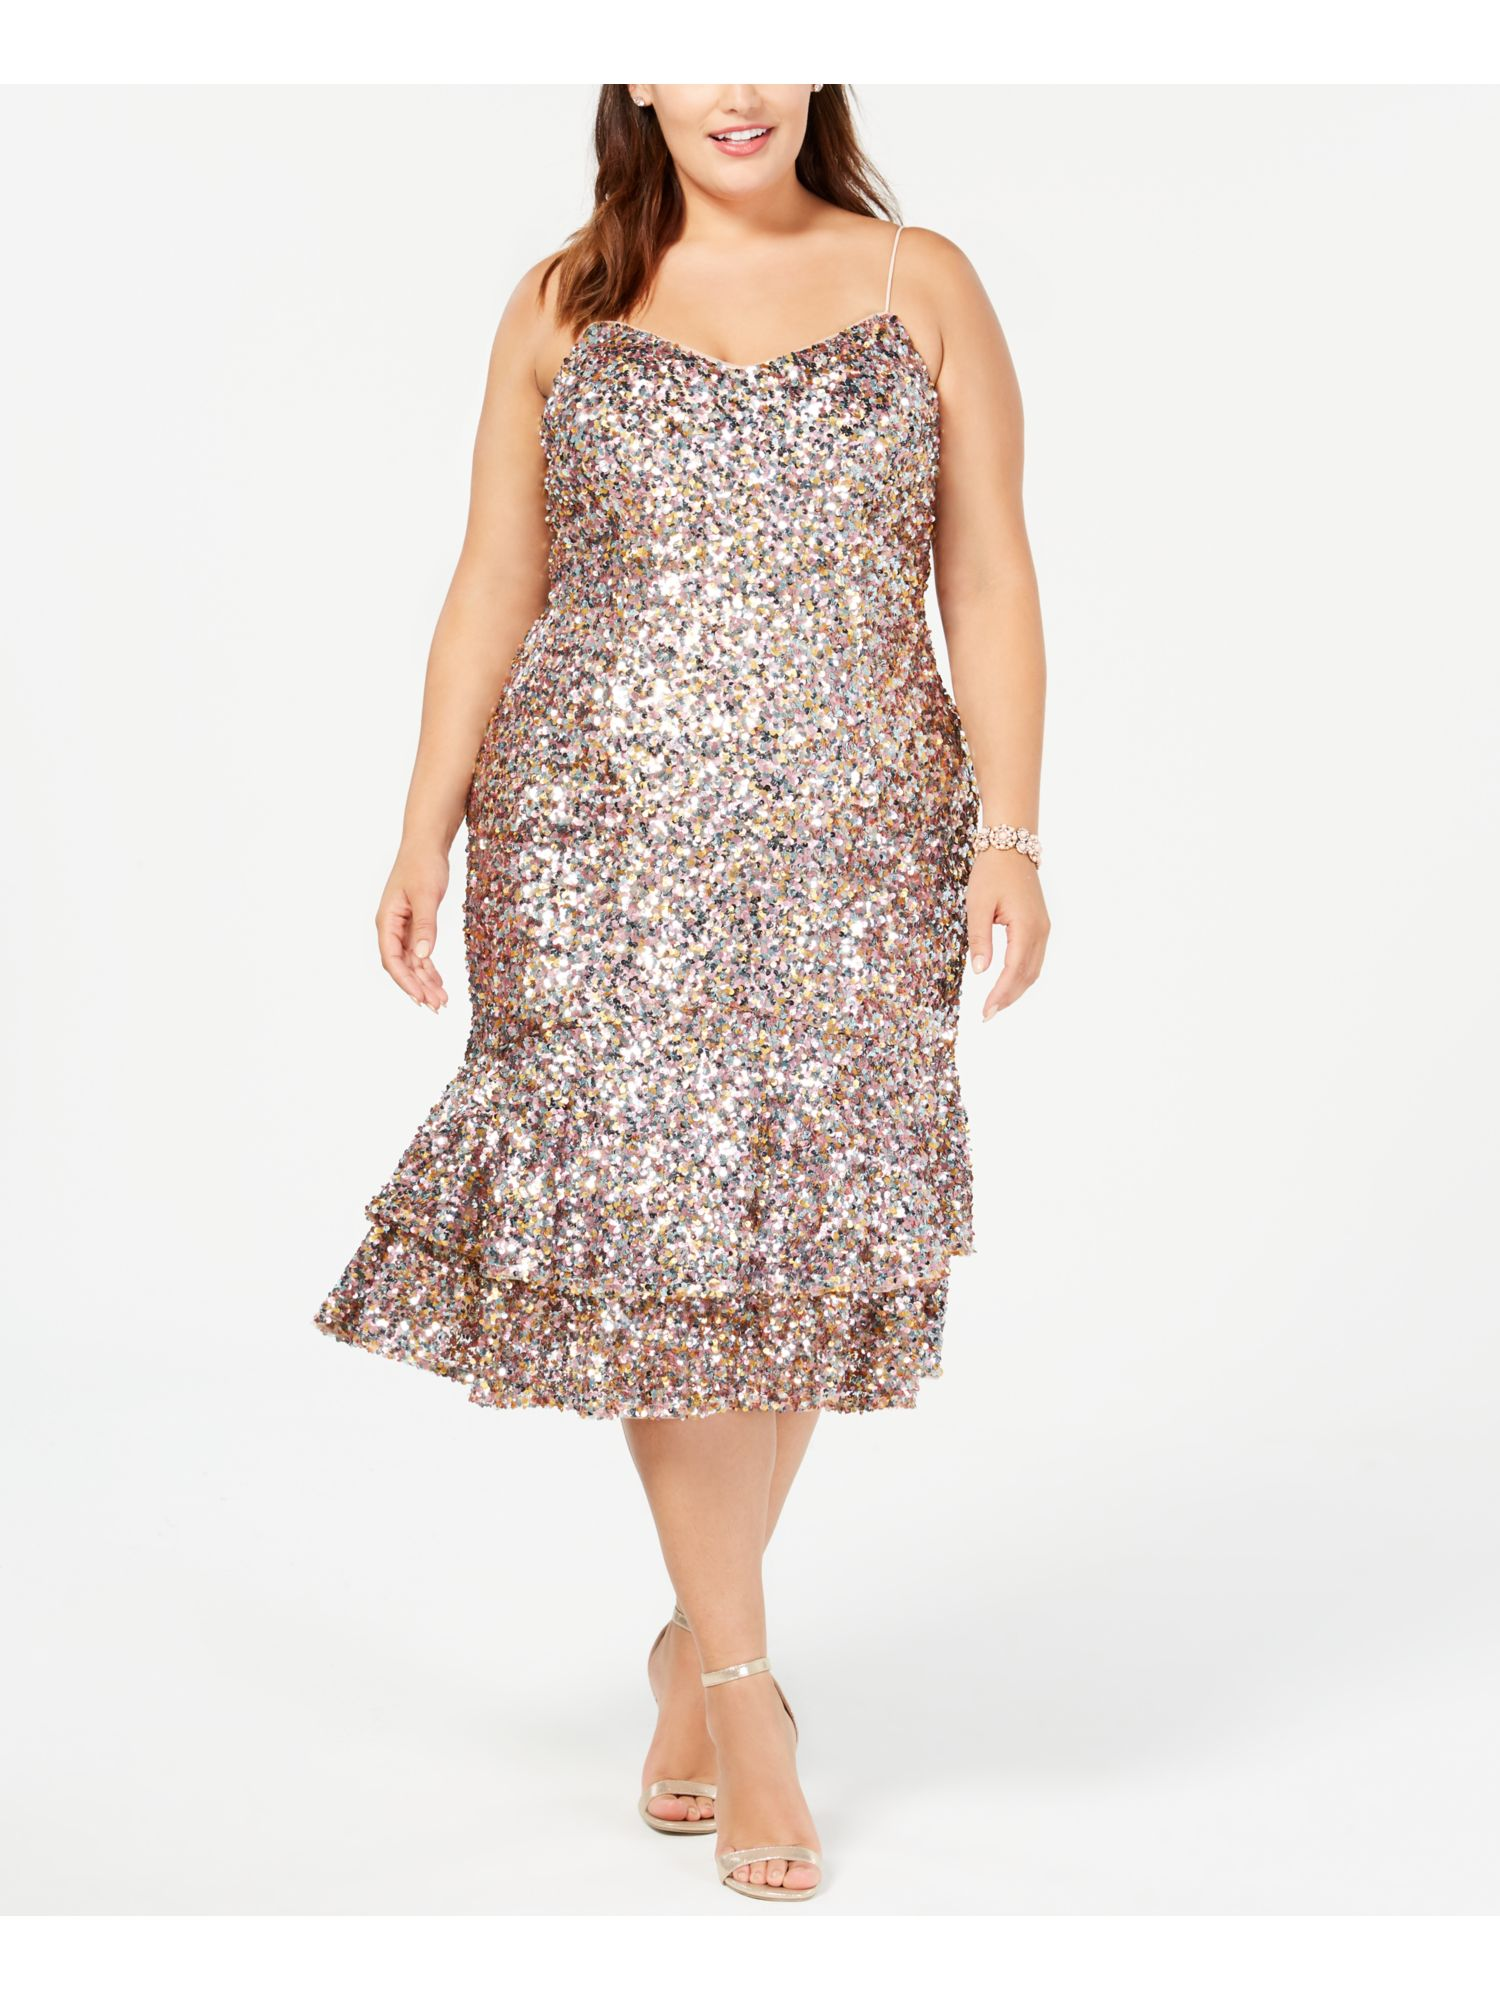 MSRP $199 Adrianna Papell Womens Plus Sequined Cocktail Midi Dress Pink 18W